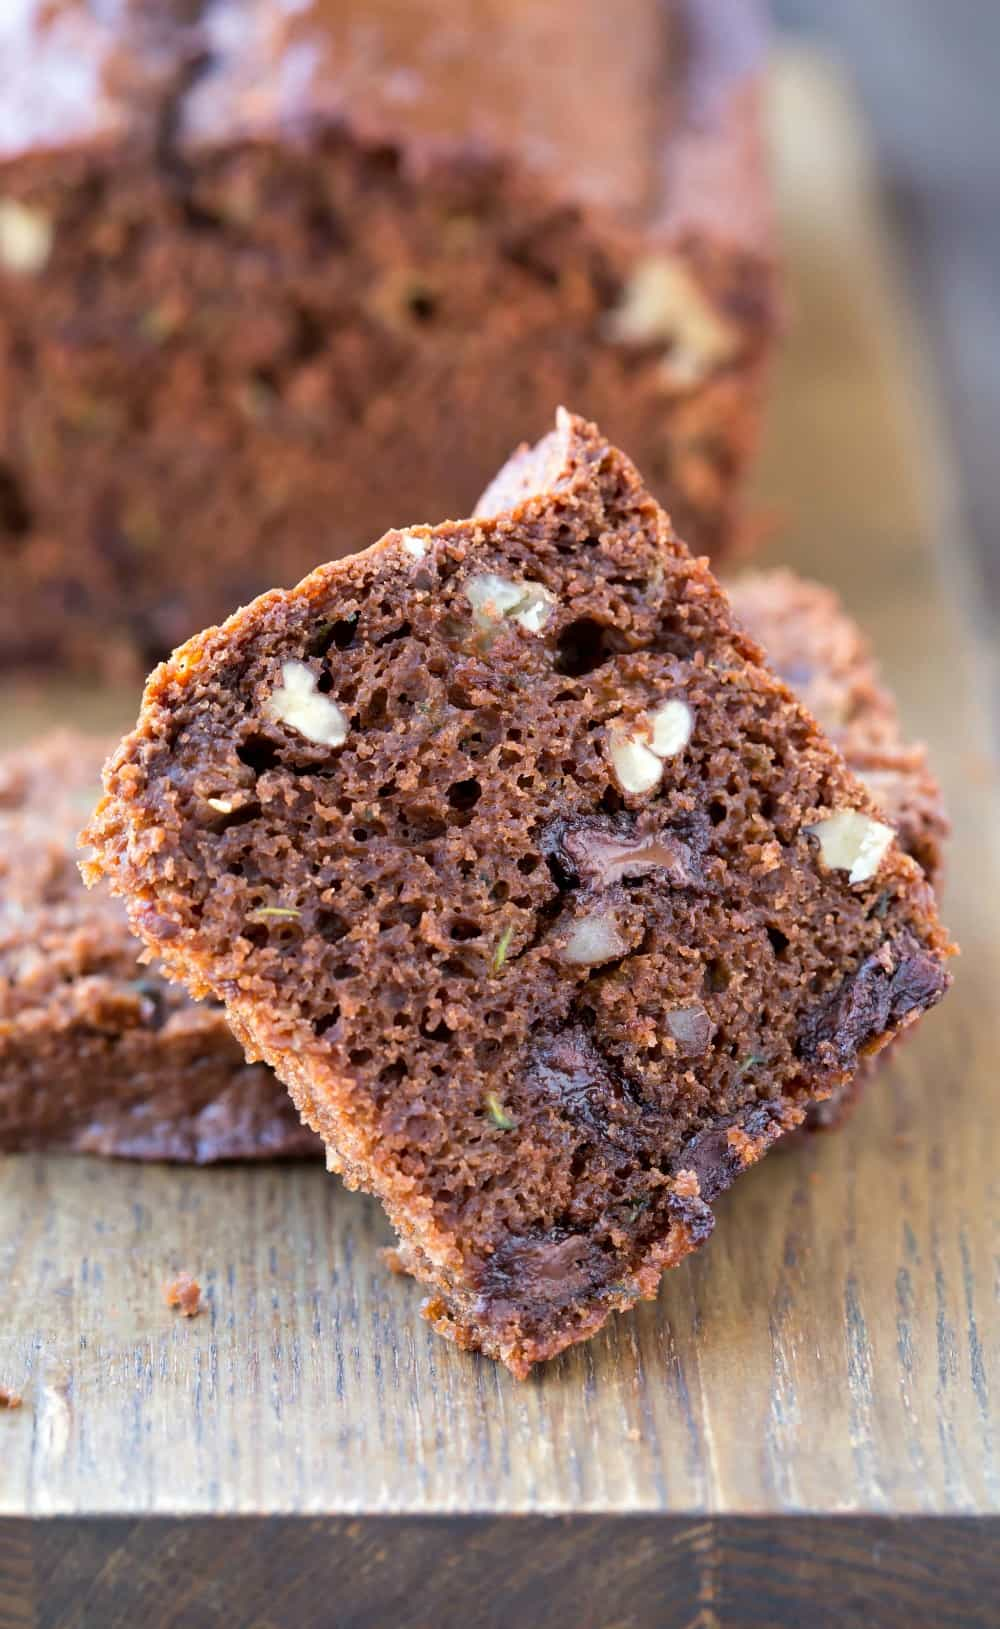 Slice of Chocolate Zucchini Bread on a wooden cutting board